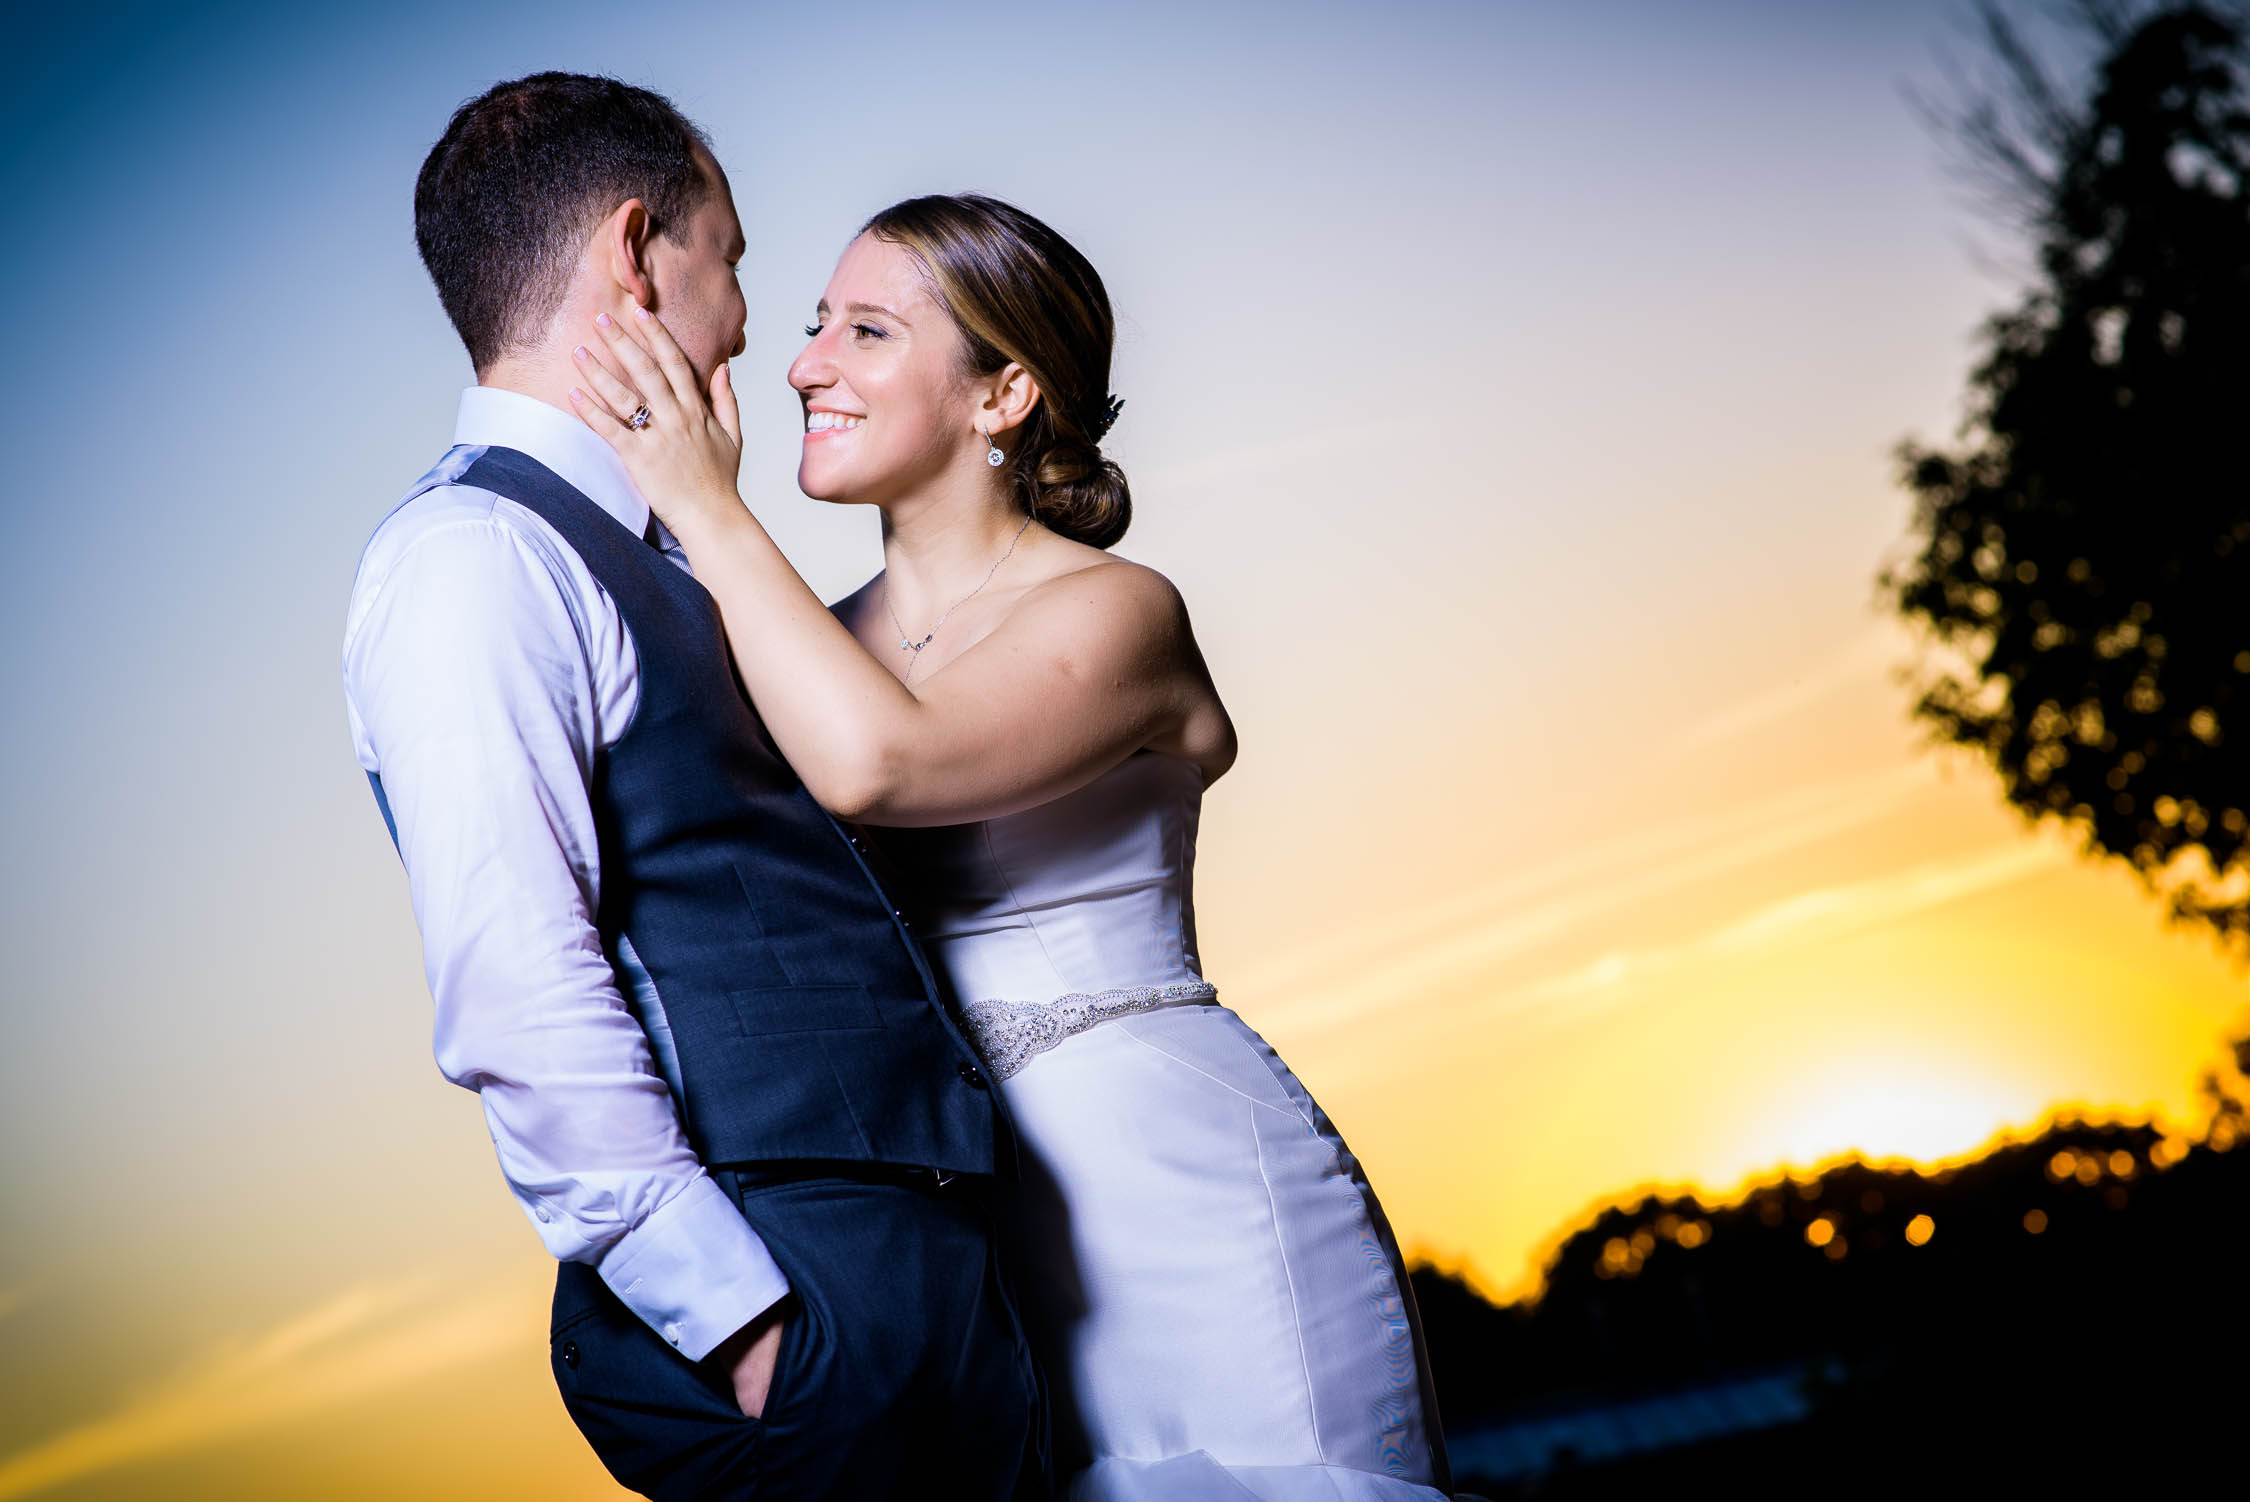 Sunset wedding day portrait of the couple at Independence Grove in Libertyville.